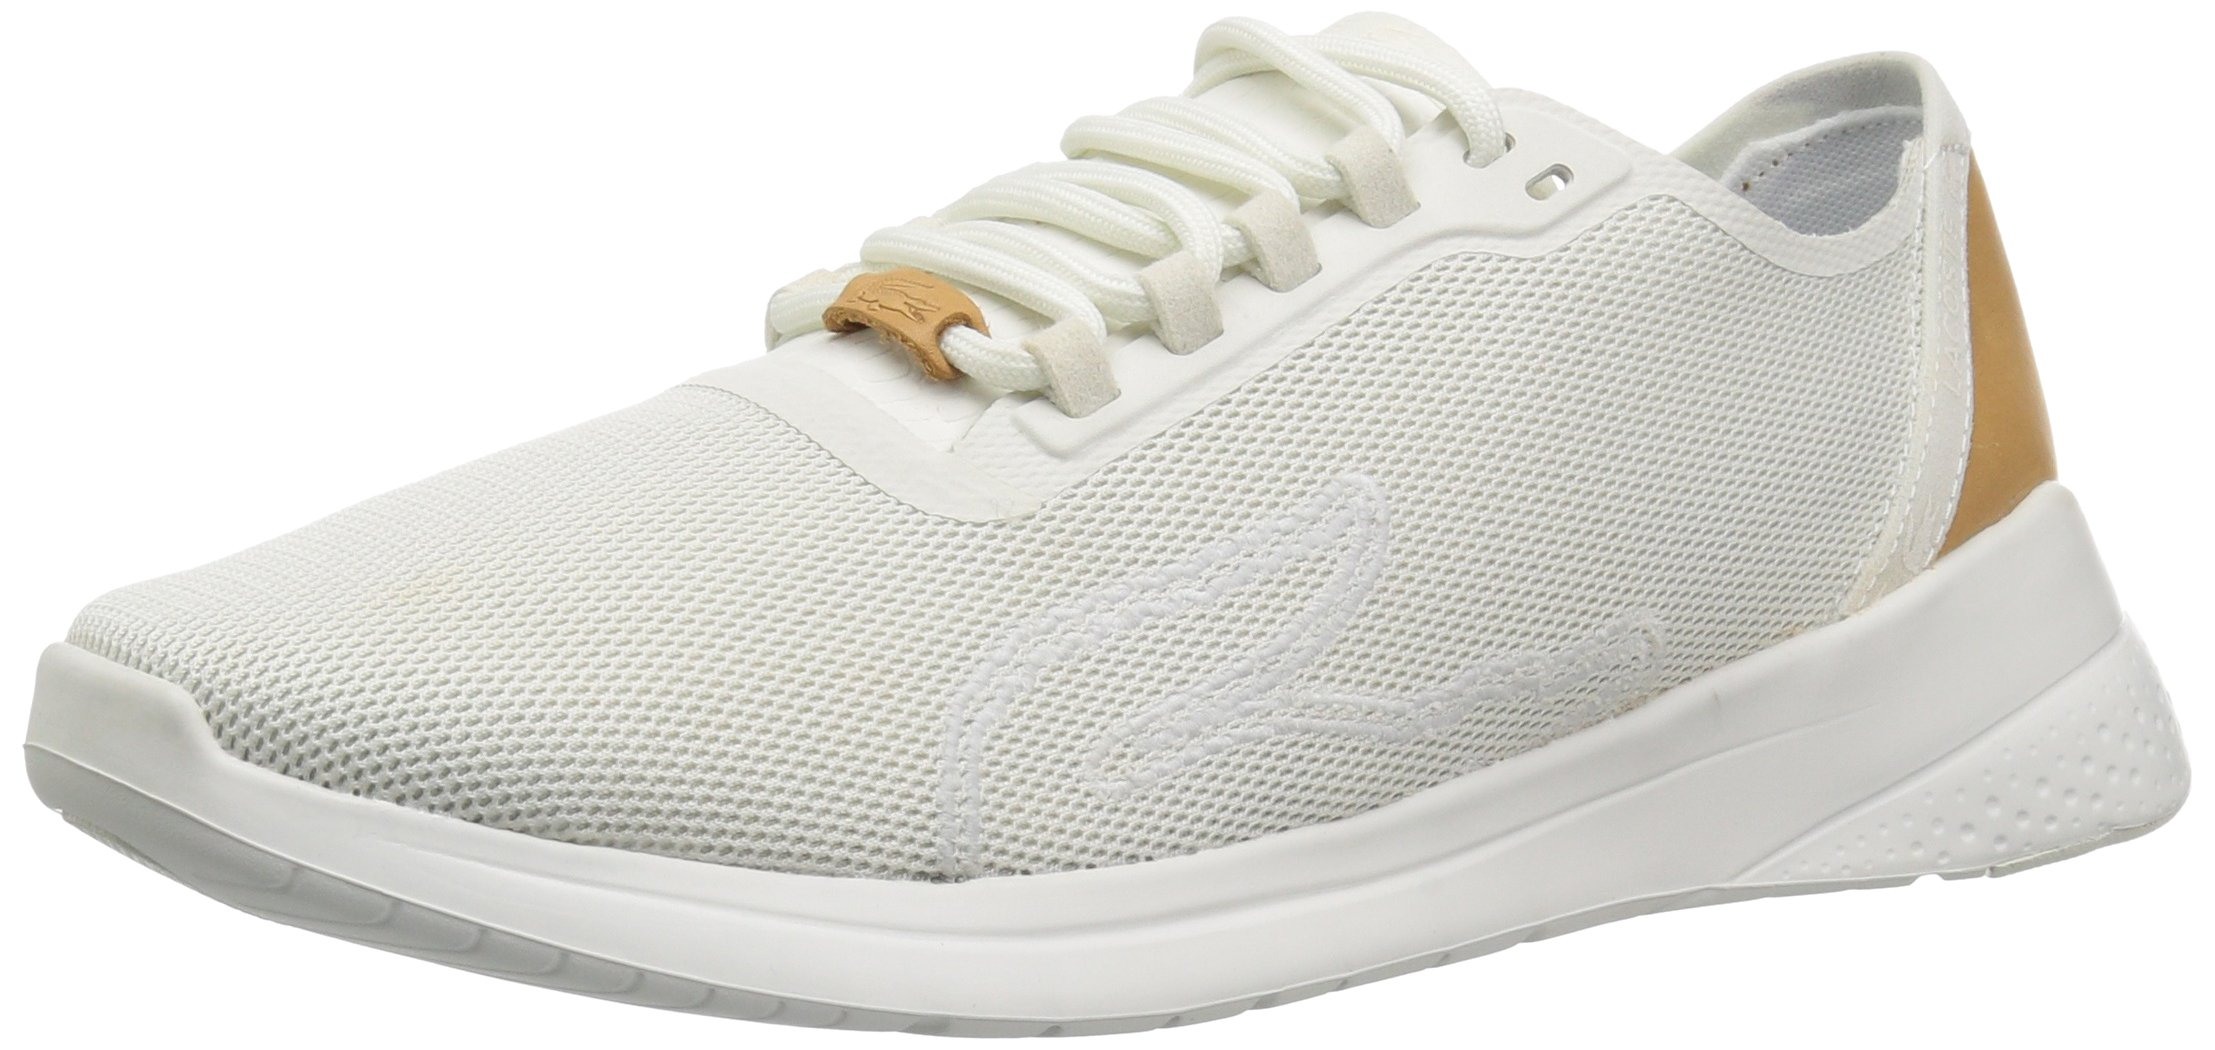 Lacoste Women's Lt Fit 118 2 Spw Sneaker, Off White/Off White, 8.5 M US